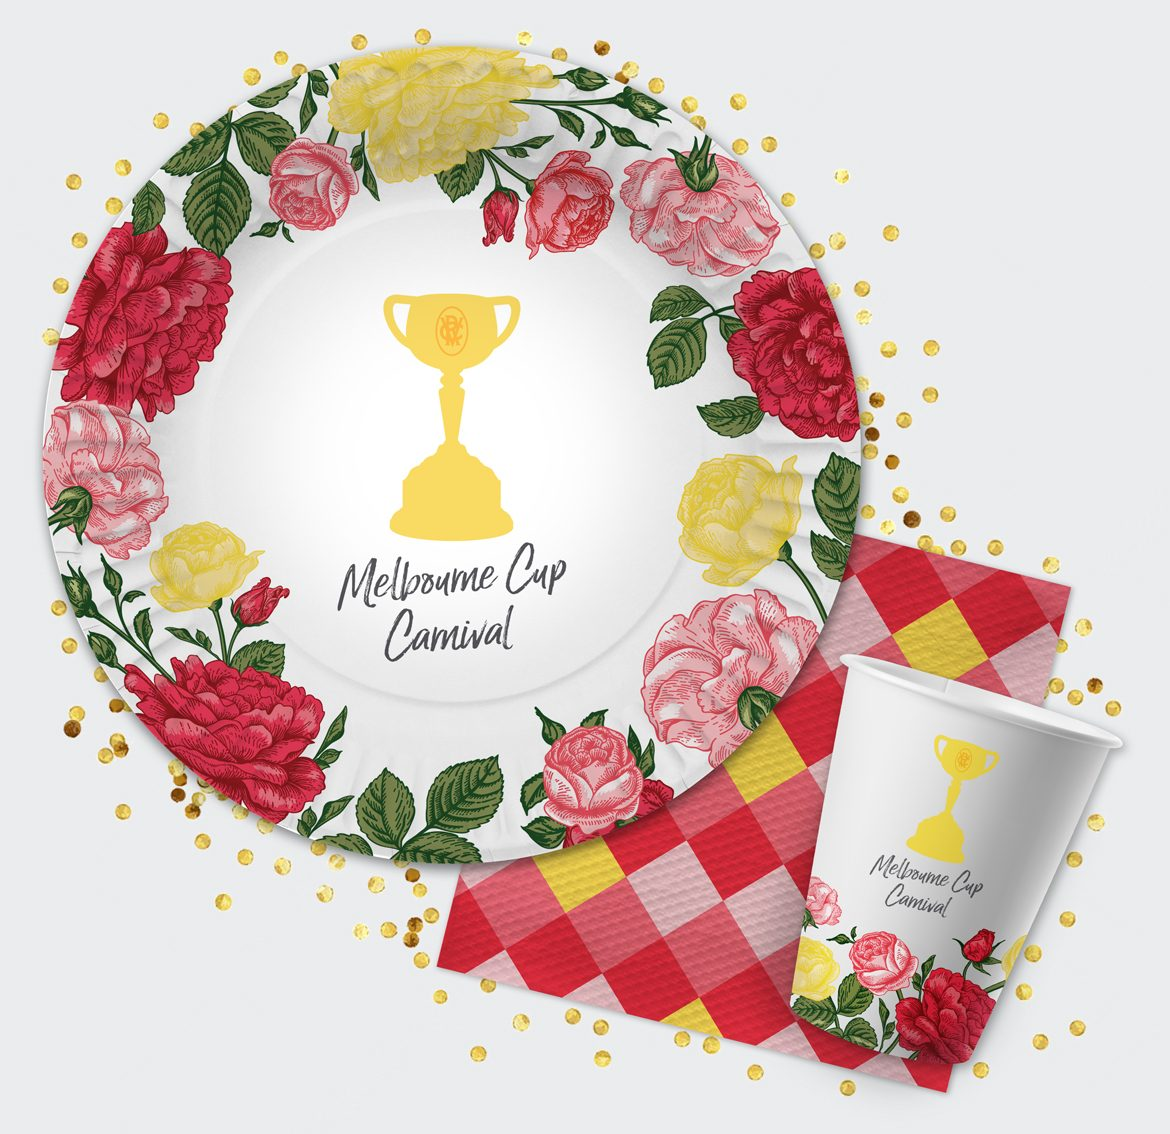 Melbourne Cup Party Plate, Napkin and Cup